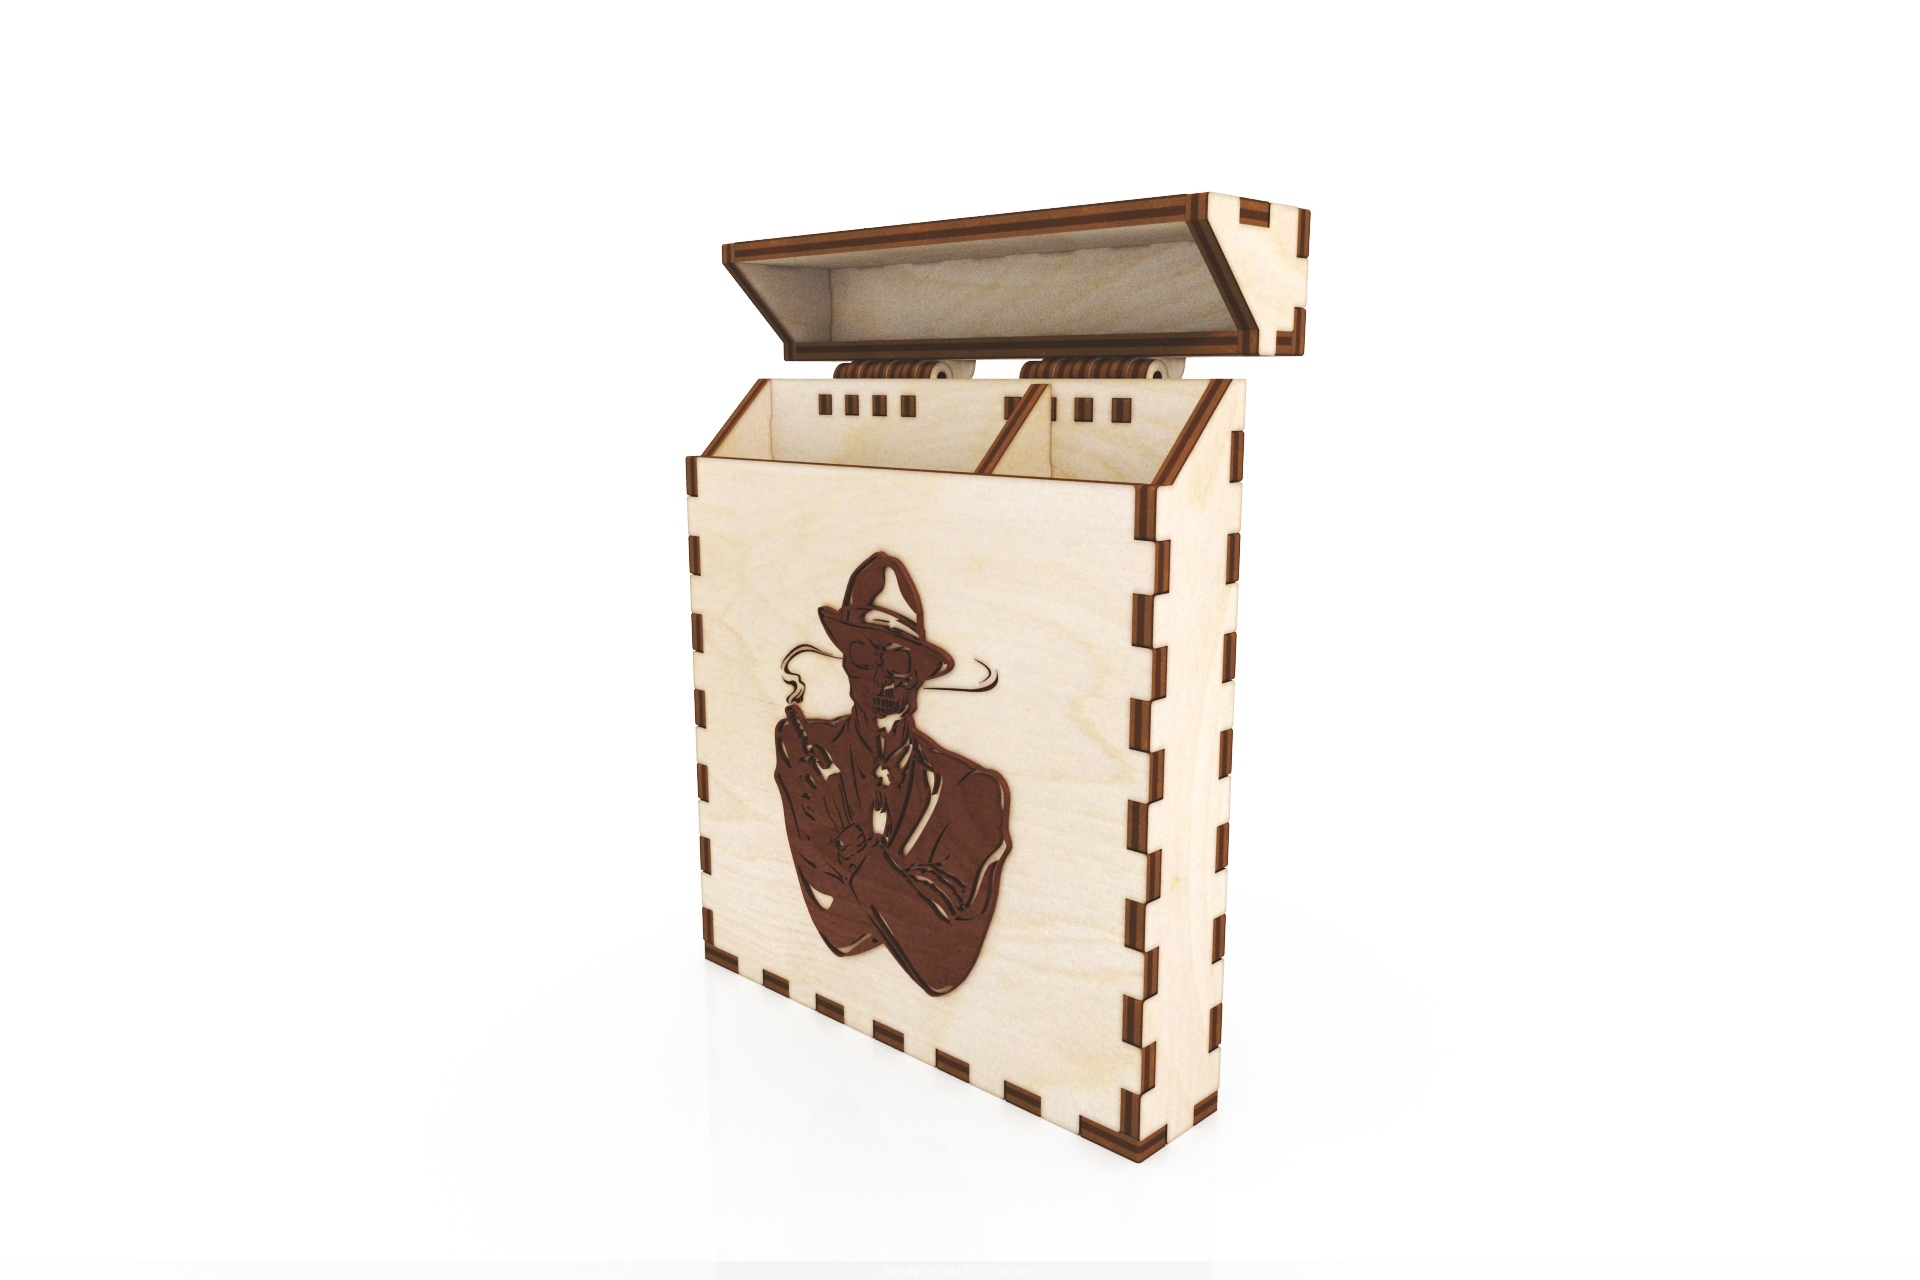 Laser Cut Wooden Cigarette Box 100mm Free Vector